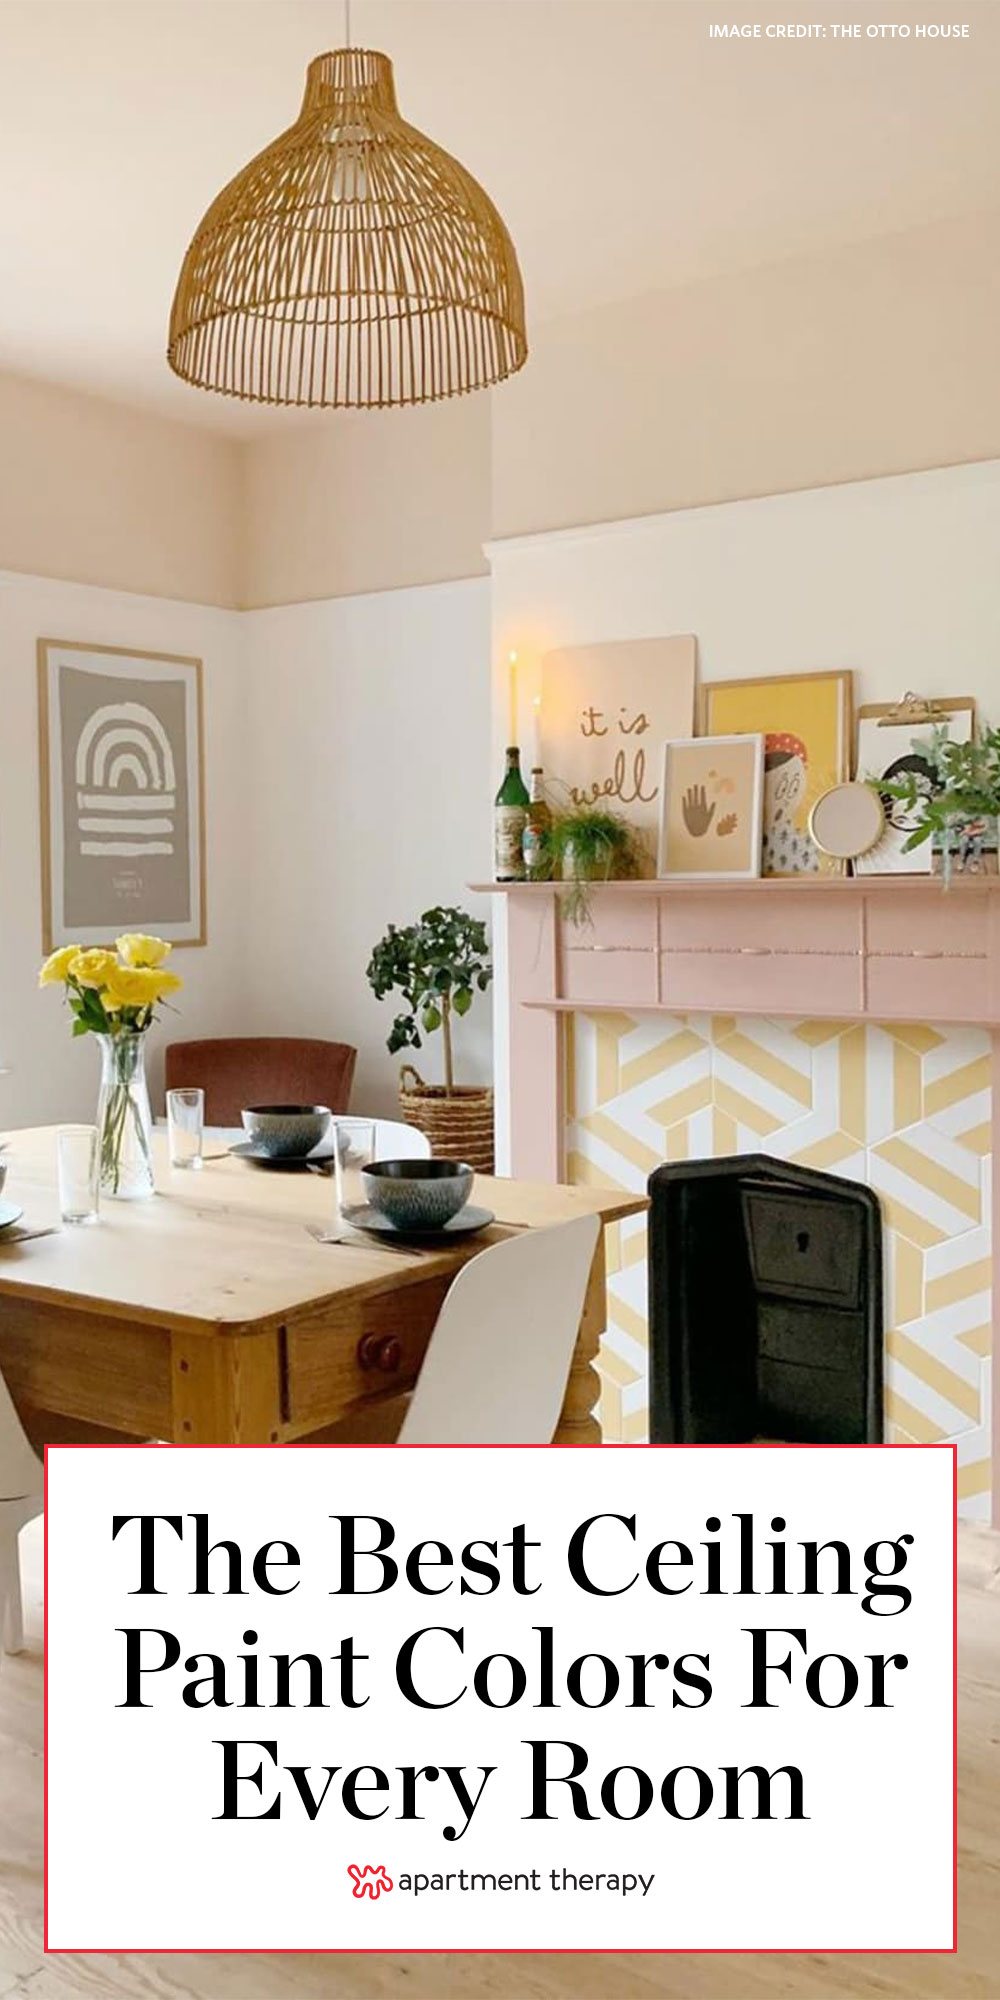 Best Ceiling Paint Colors According To A Designer Apartment Therapy